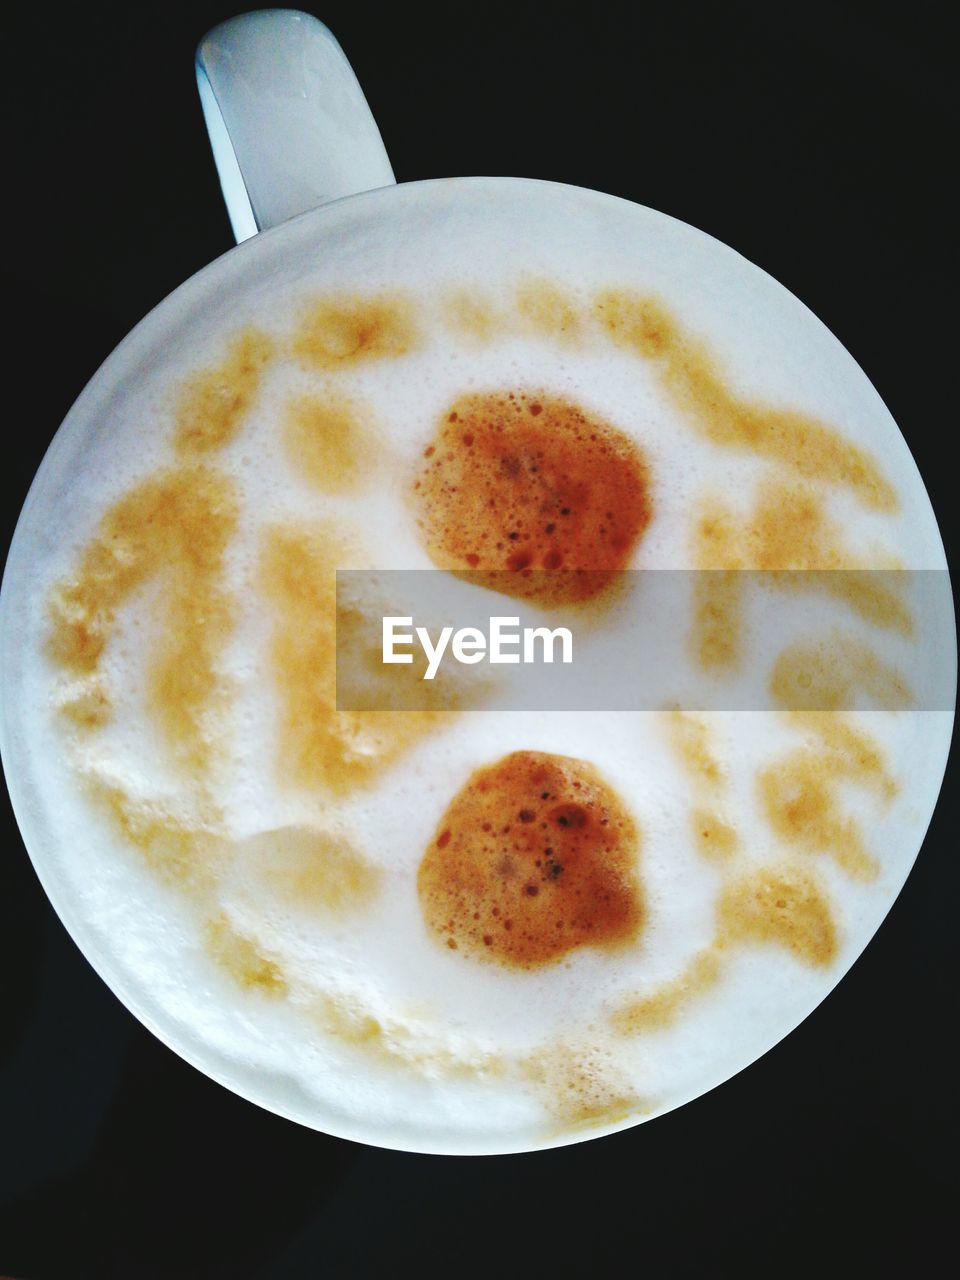 coffee cup, coffee - drink, food and drink, frothy drink, drink, high angle view, table, black background, no people, plate, refreshment, froth art, cappuccino, close-up, freshness, healthy eating, indoors, food, ready-to-eat, day